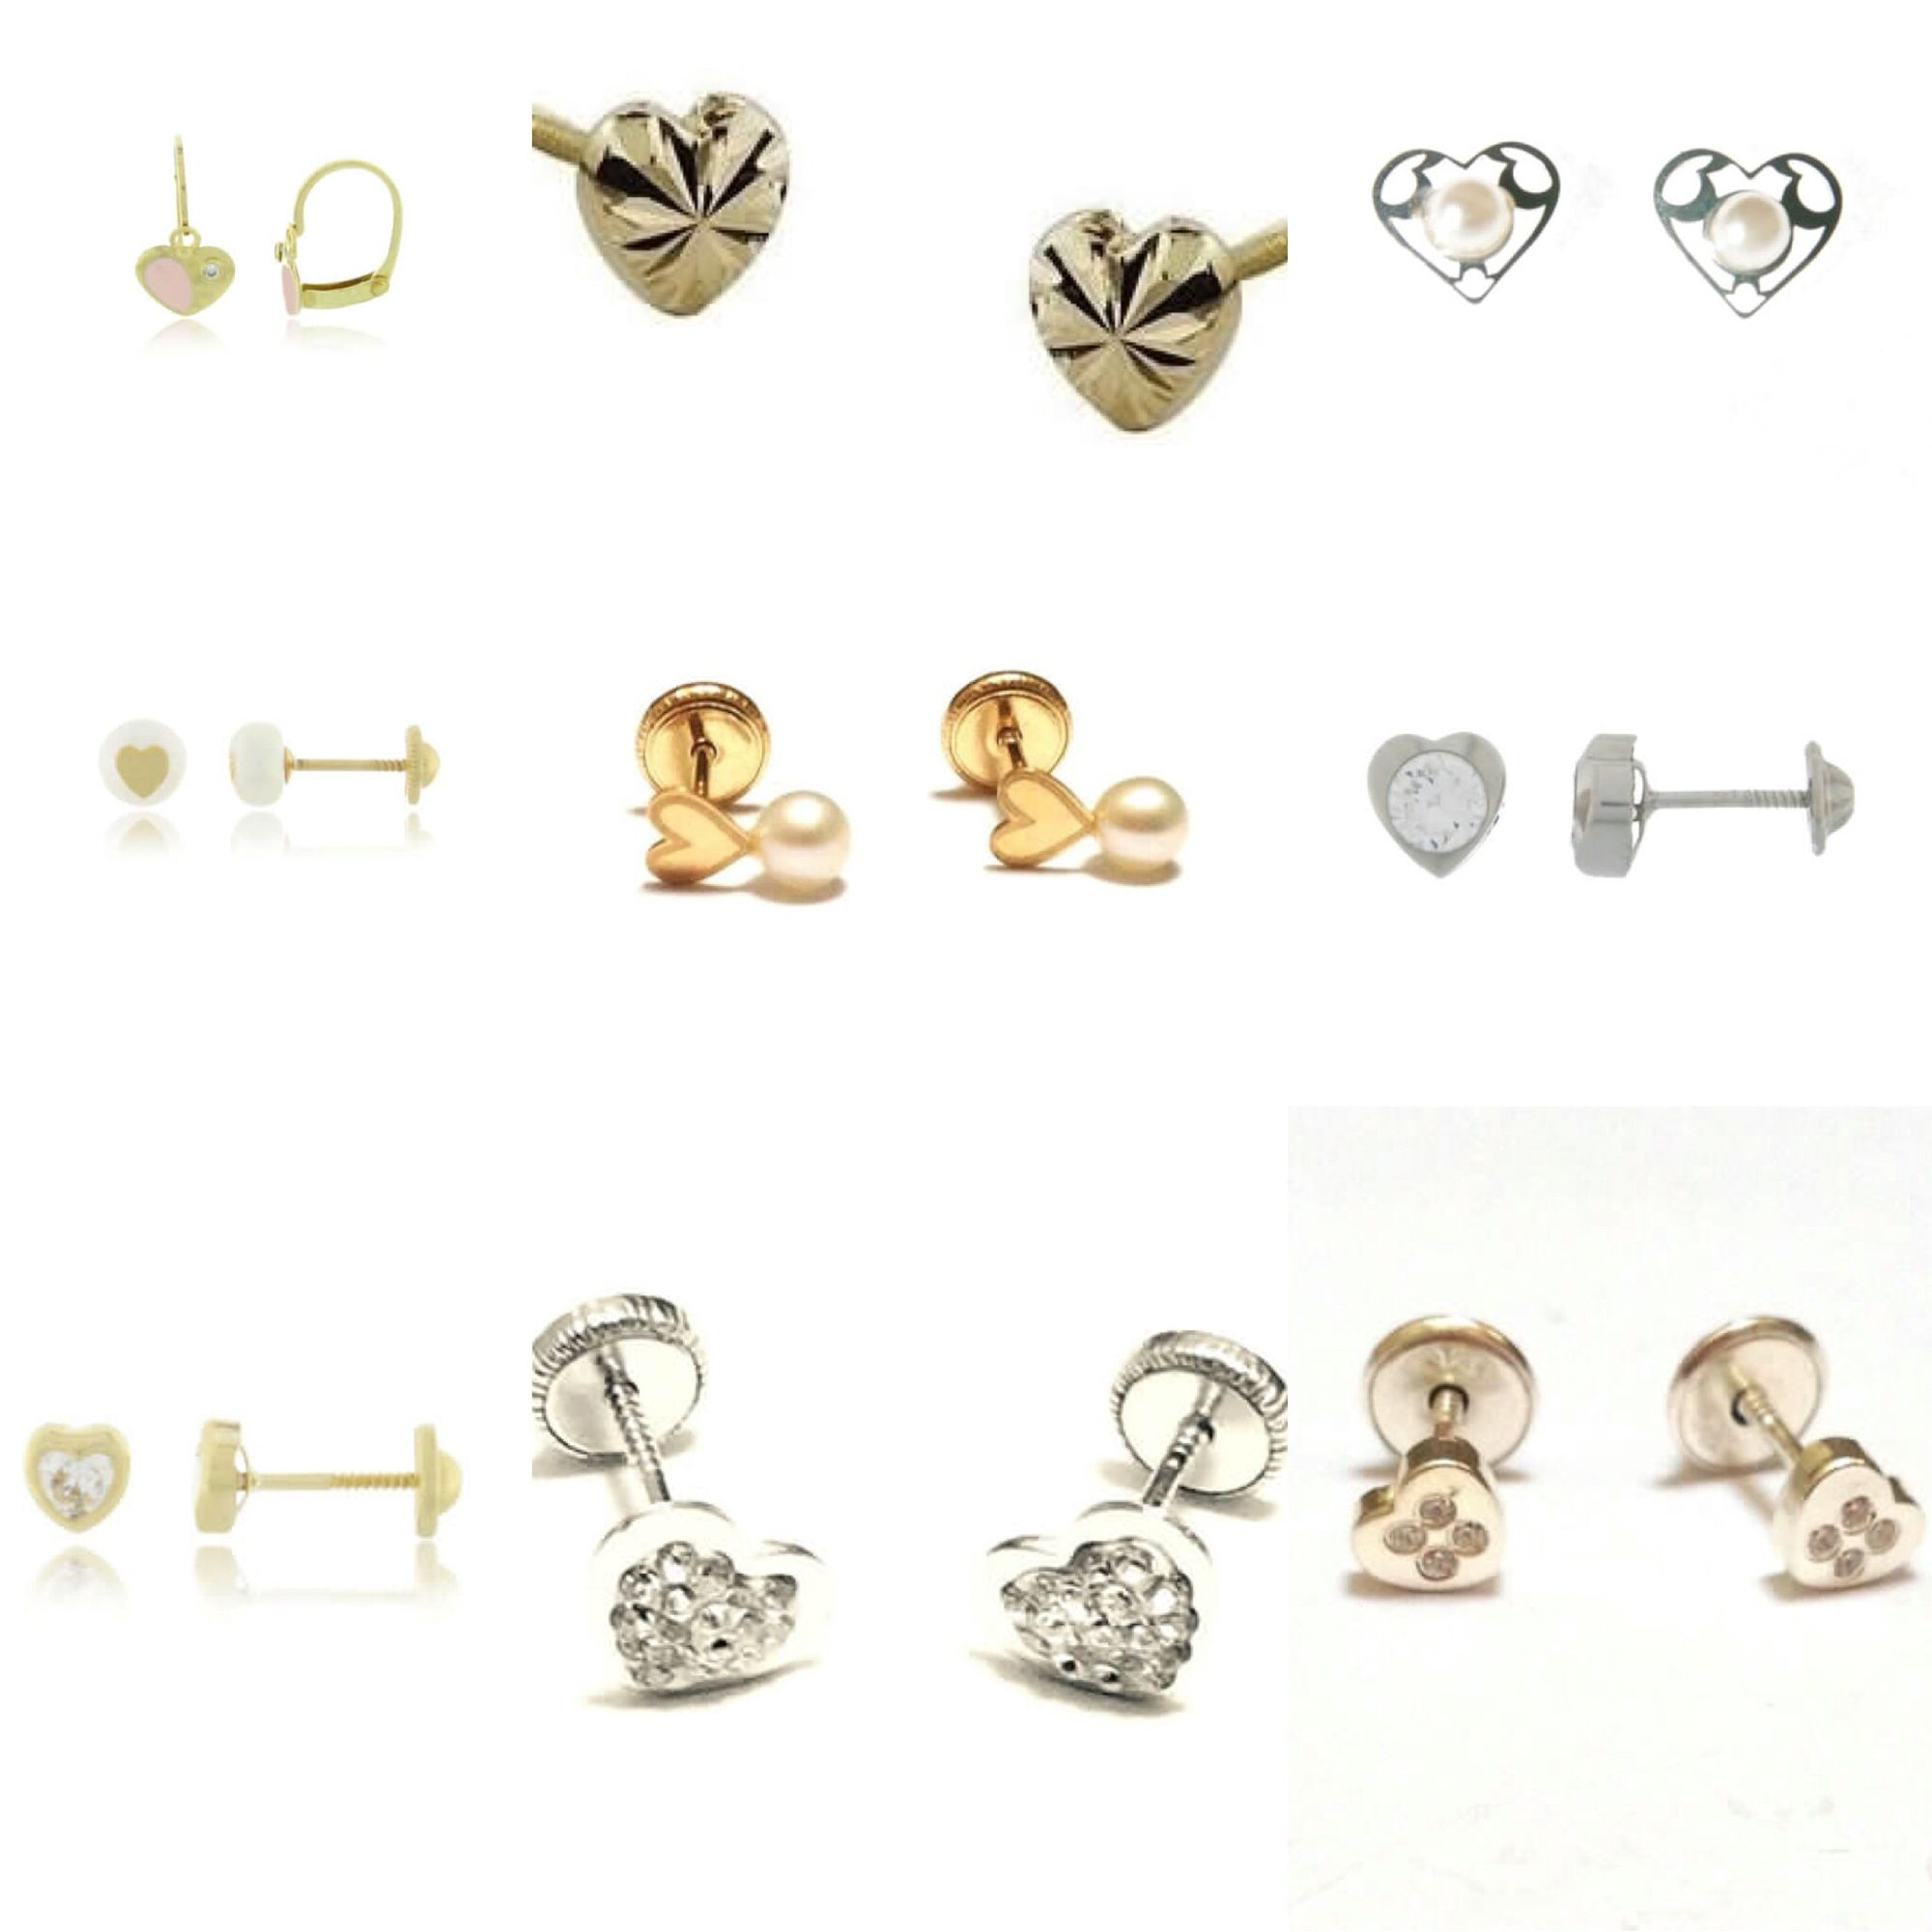 My Heart Is Aflutter With These Child Safe Earrings For Kids 18kgold Safetybackearrings Ptparoved